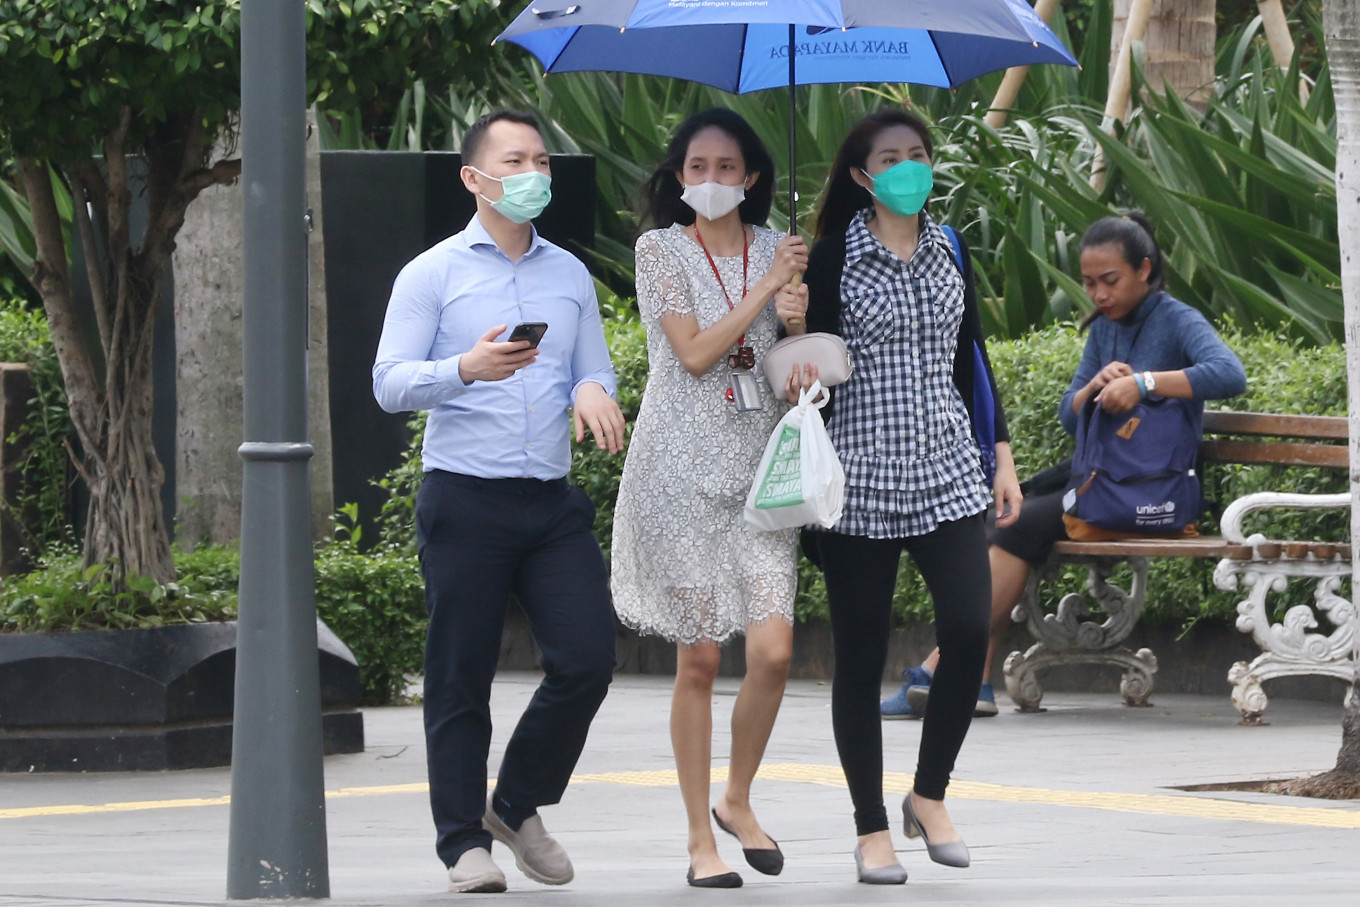 Climate, immunity, incompetence? Indonesia's zero recorded coronavirus cases raise questions, posted on Monday, 10 February 2020